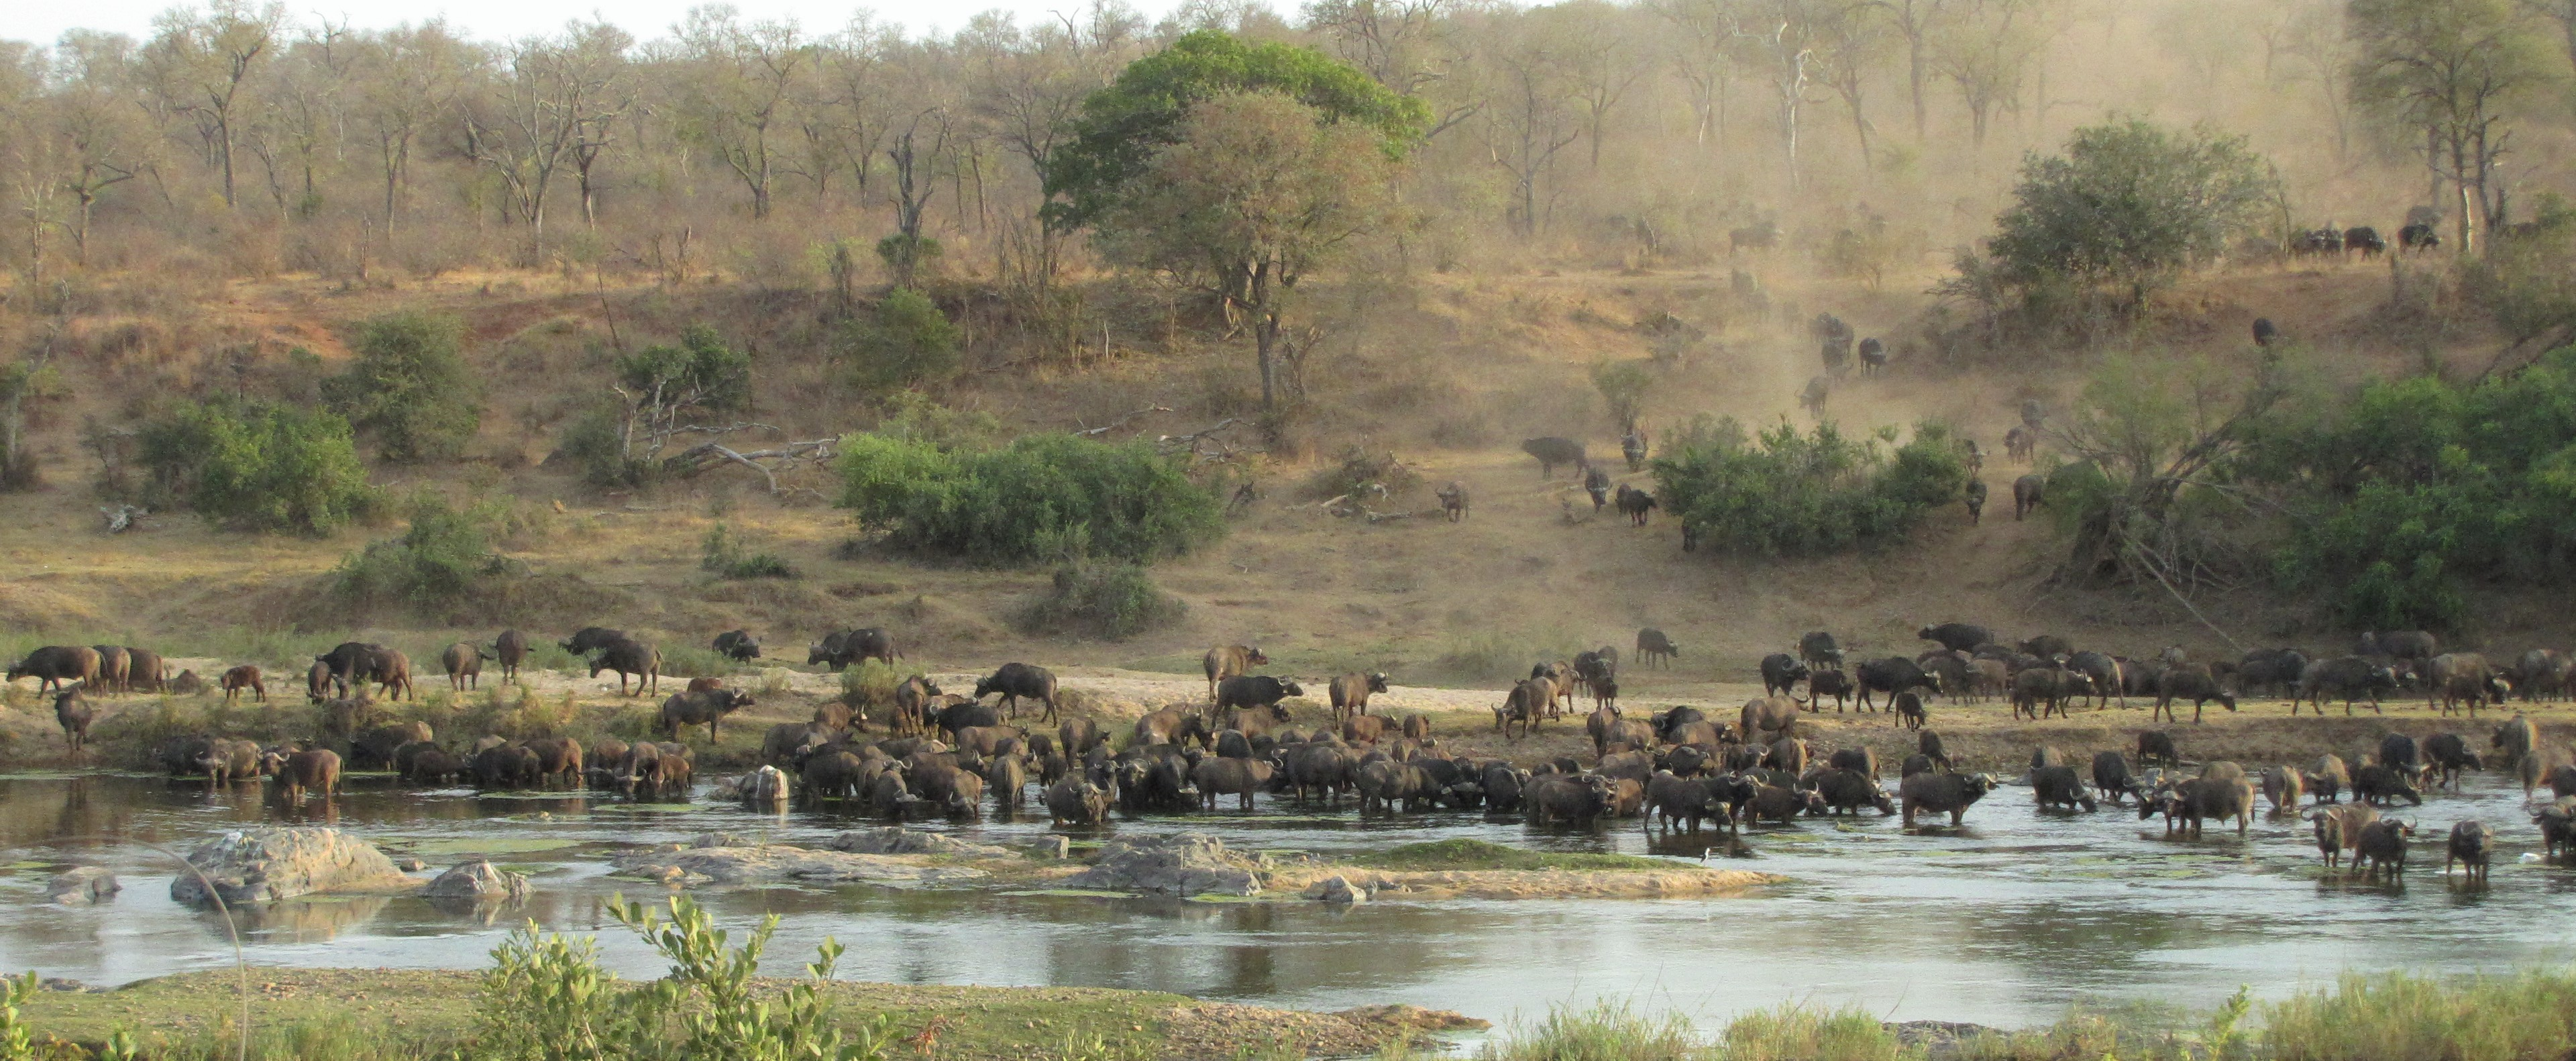 Mjejane Reserve - Herd of Buffaloes